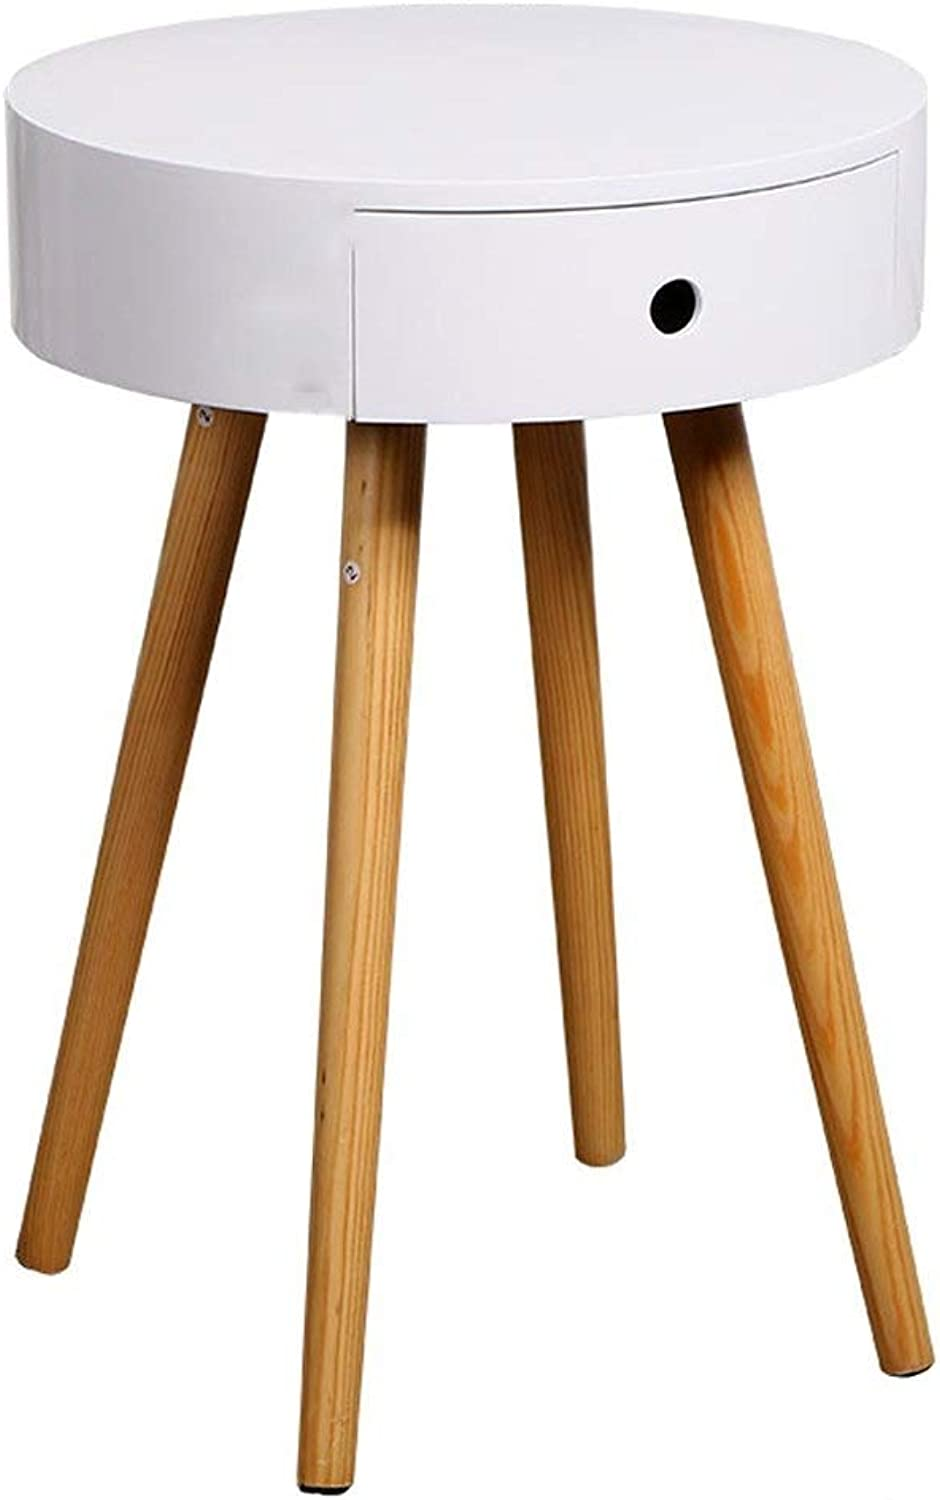 Nordic Wind Bedside Table Simple Solid Wood Leg Bedroom Storage Table Side with Drawers White